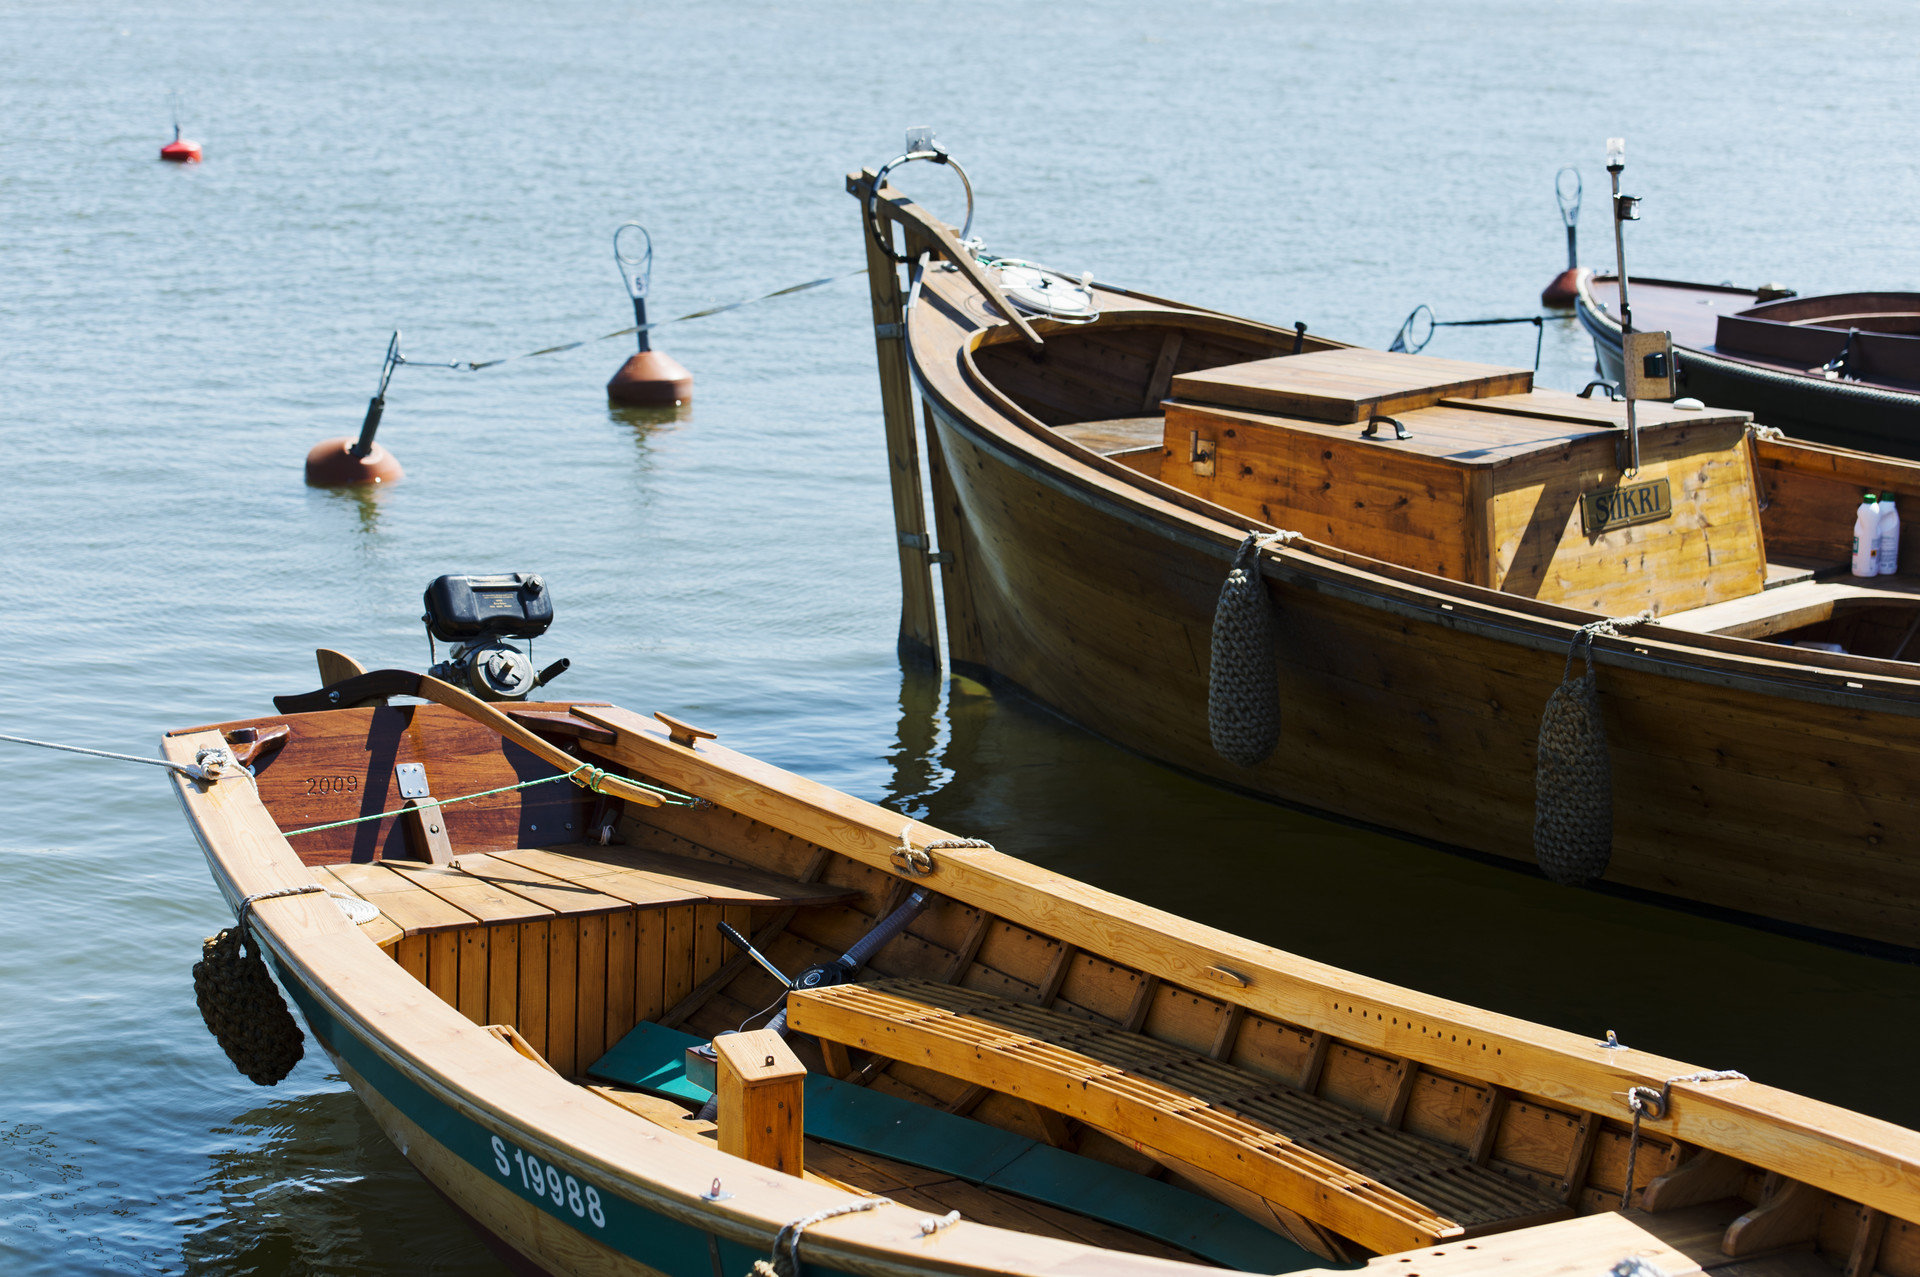 Trip Ideas water Boat vehicle outdoor watercraft rowing fishing vessel watercraft wooden caravel dock Sea motorboat skiff boating barque dinghy tied